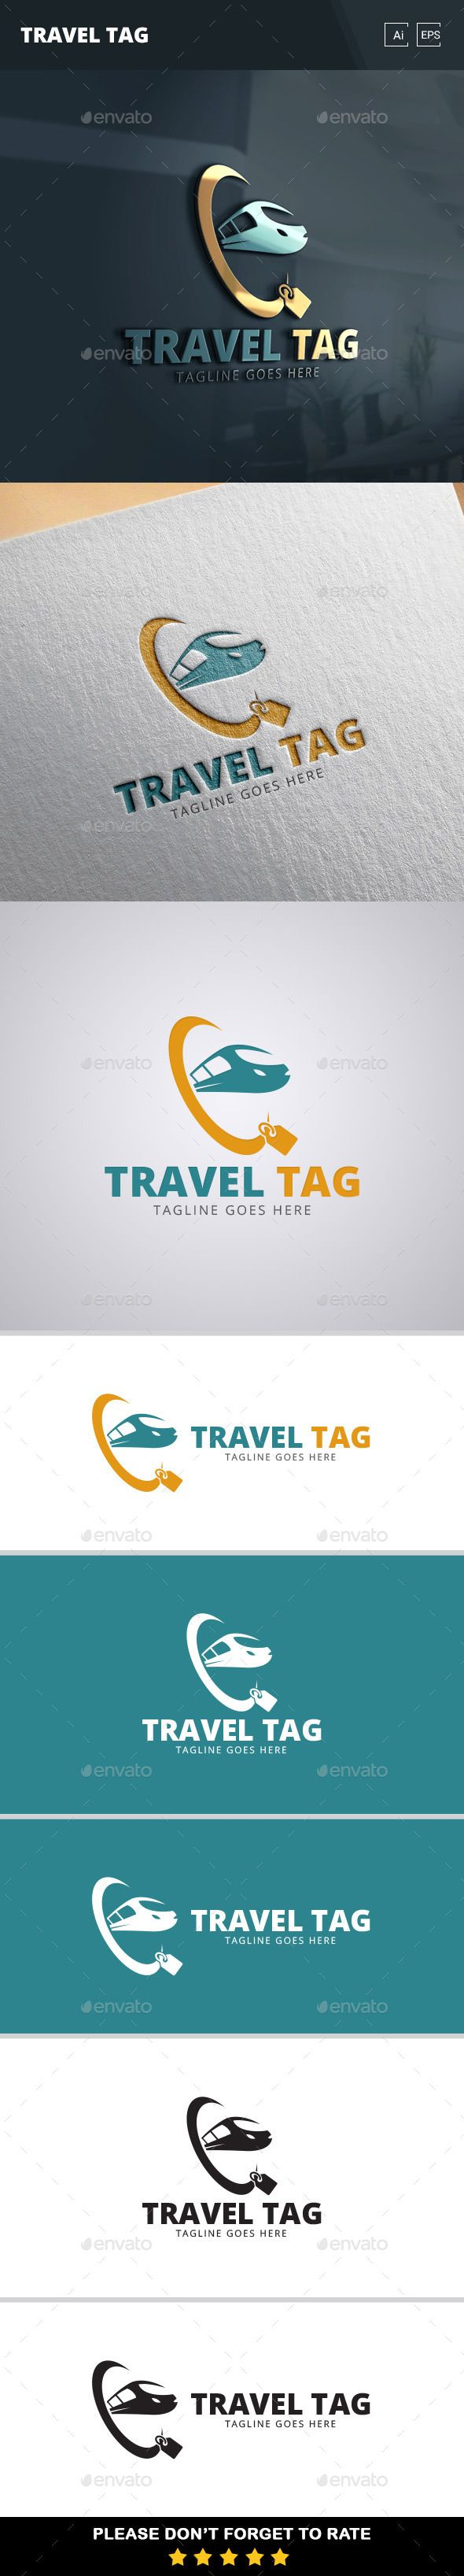 Travel Tag Logo Template